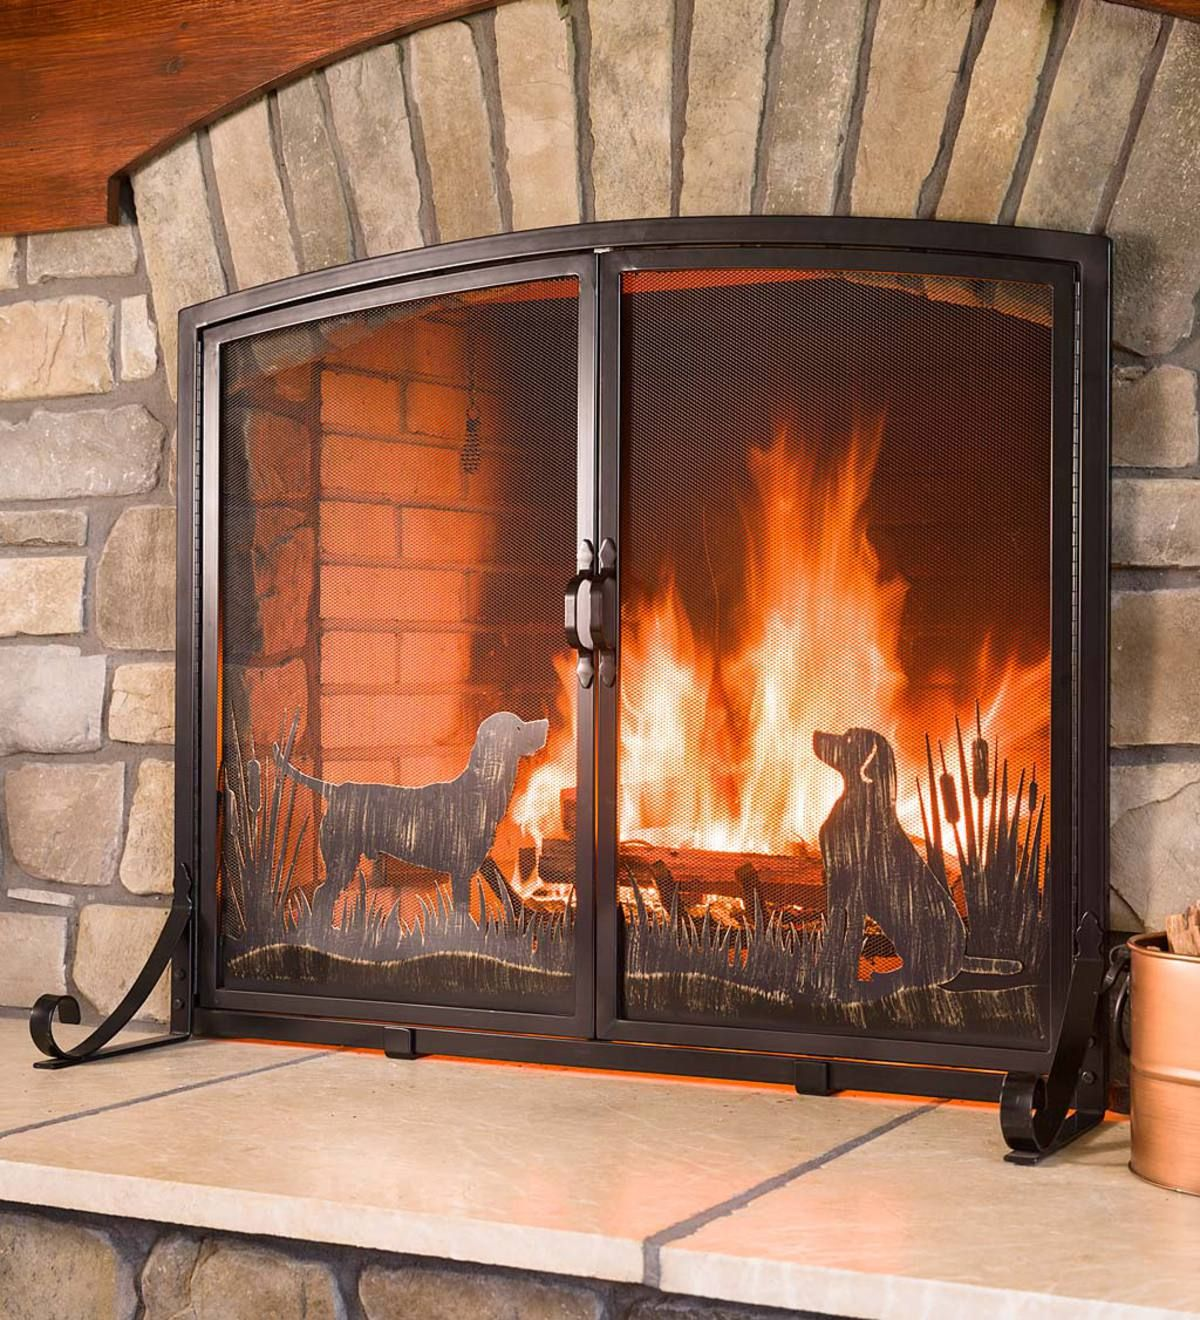 Show Your Love Of Labs With A Timeless Design Made To Enhance Your Fireplace Our Two Door Retriever D Fireplace Screens With Doors Fireplace Screen Fireplace